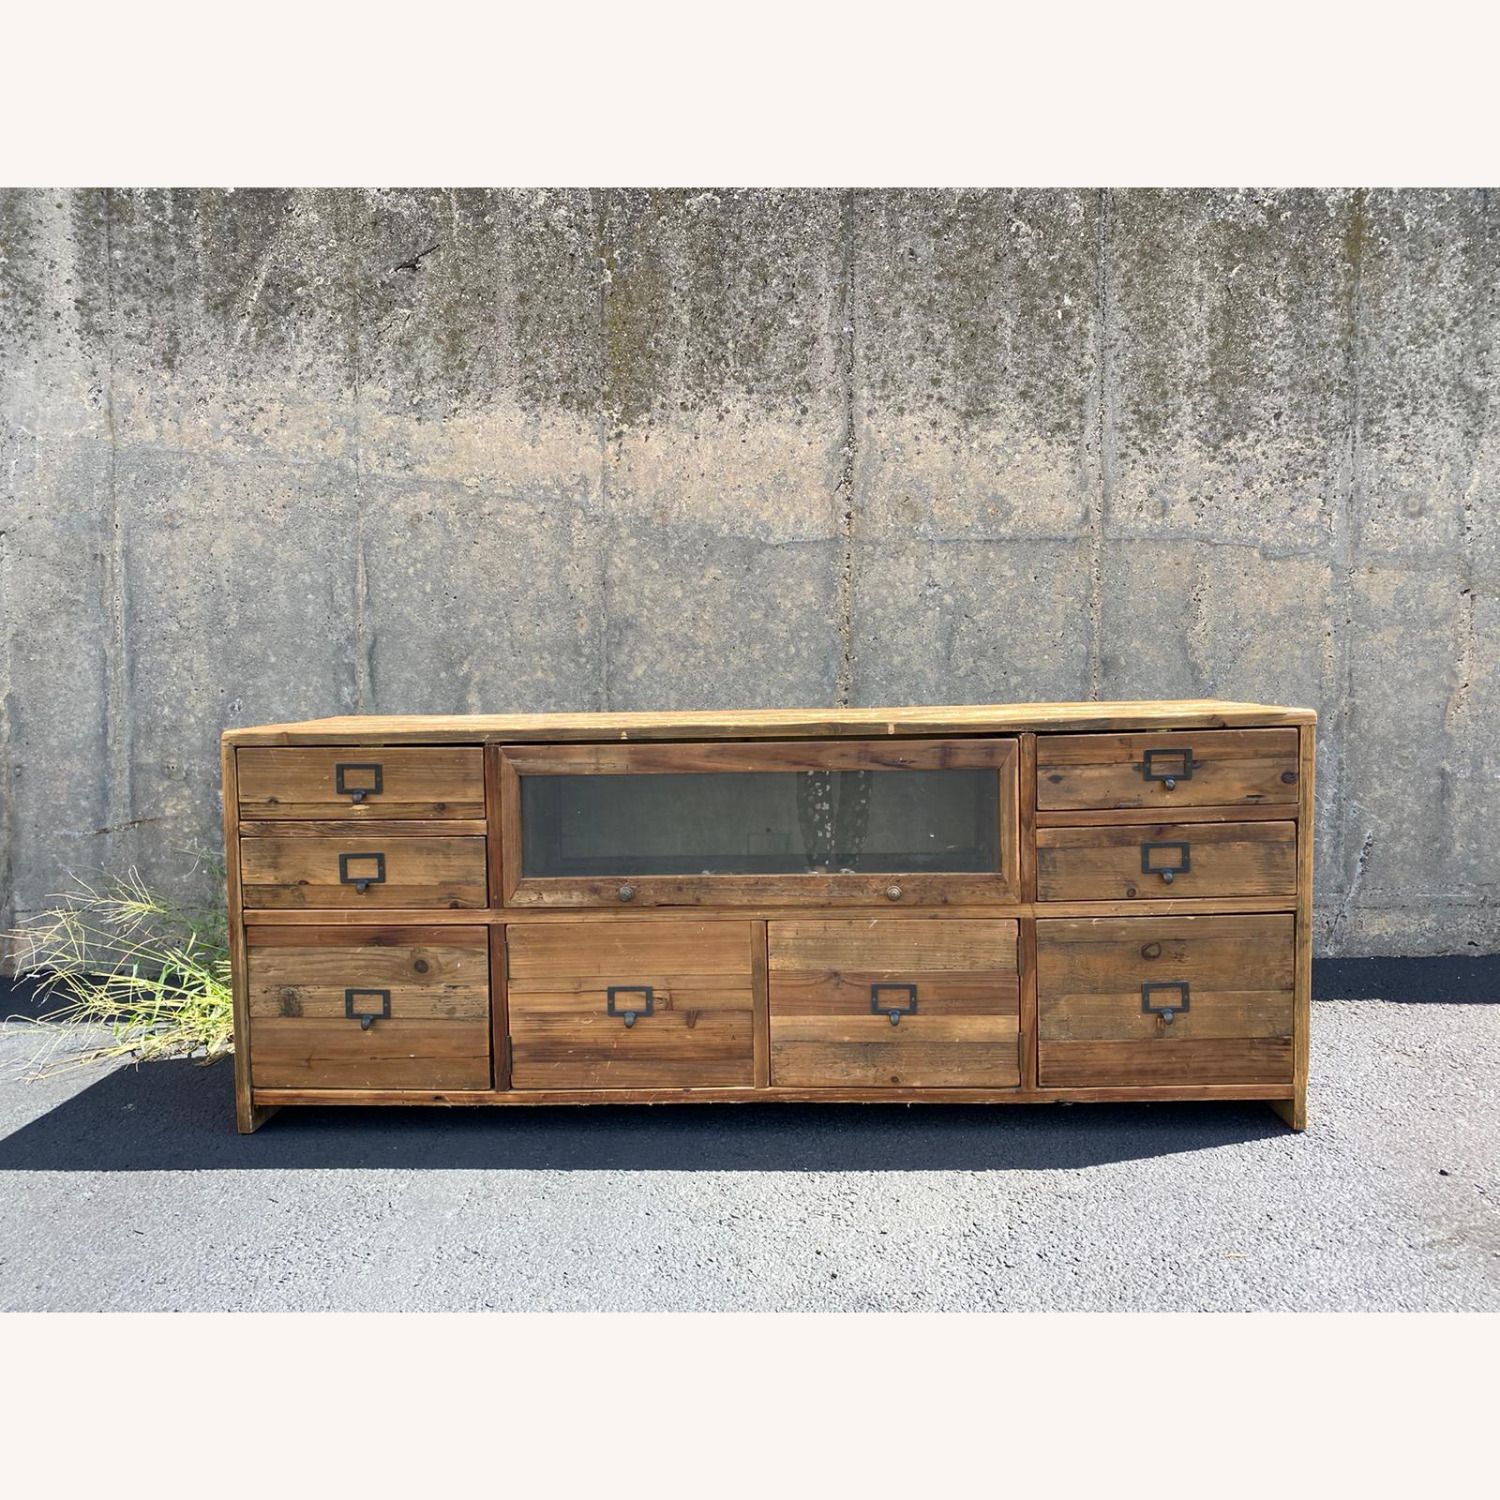 Crate & Barrel Reclaimed Wood Media Console - image-1